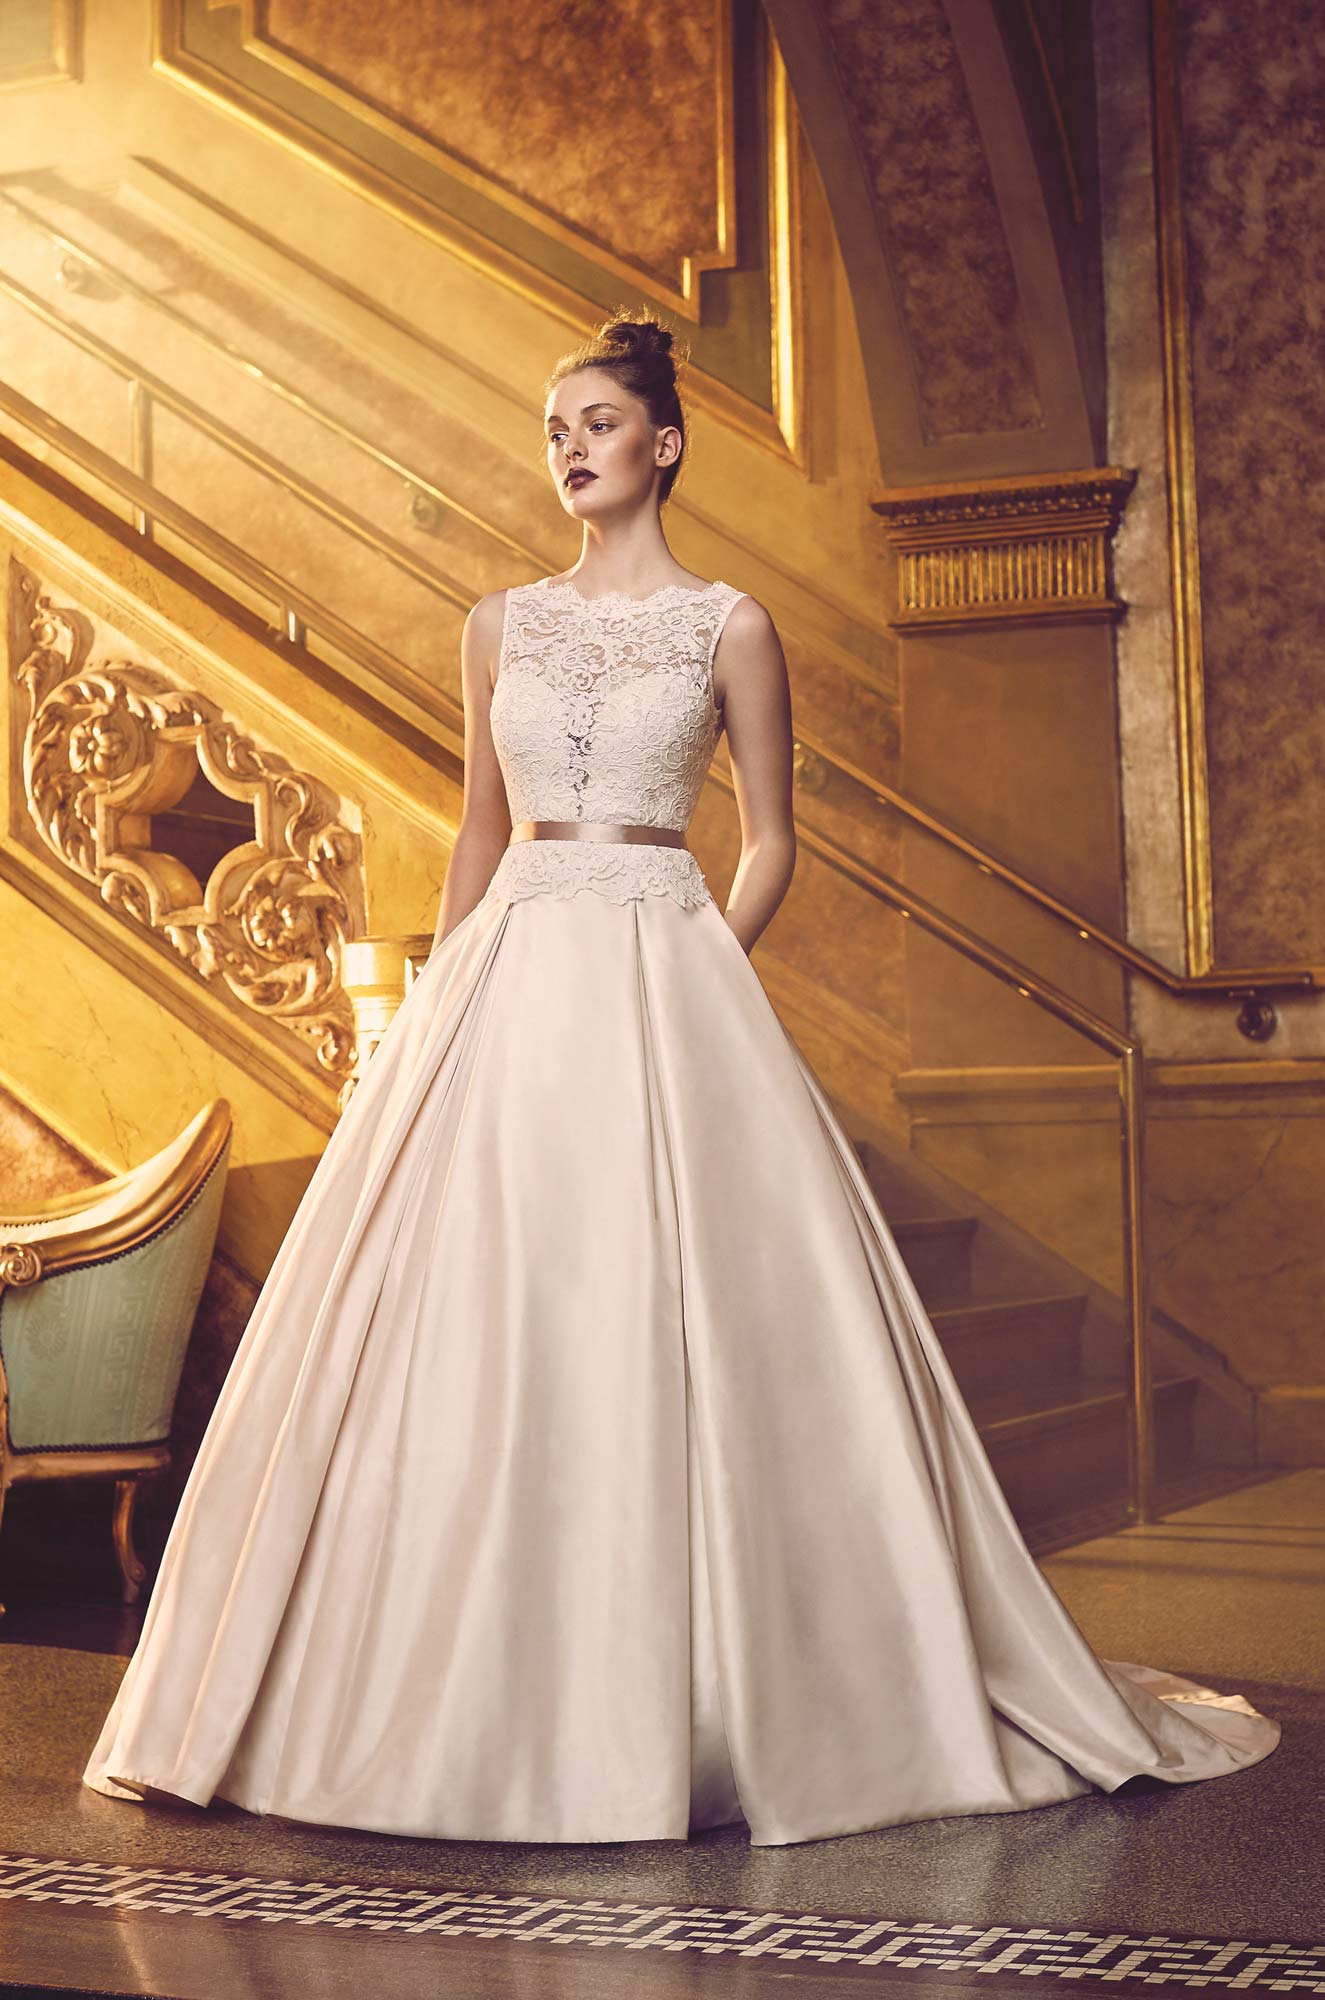 Silk Ball Gown Wedding Dress - Style #4720 | Paloma Blanca